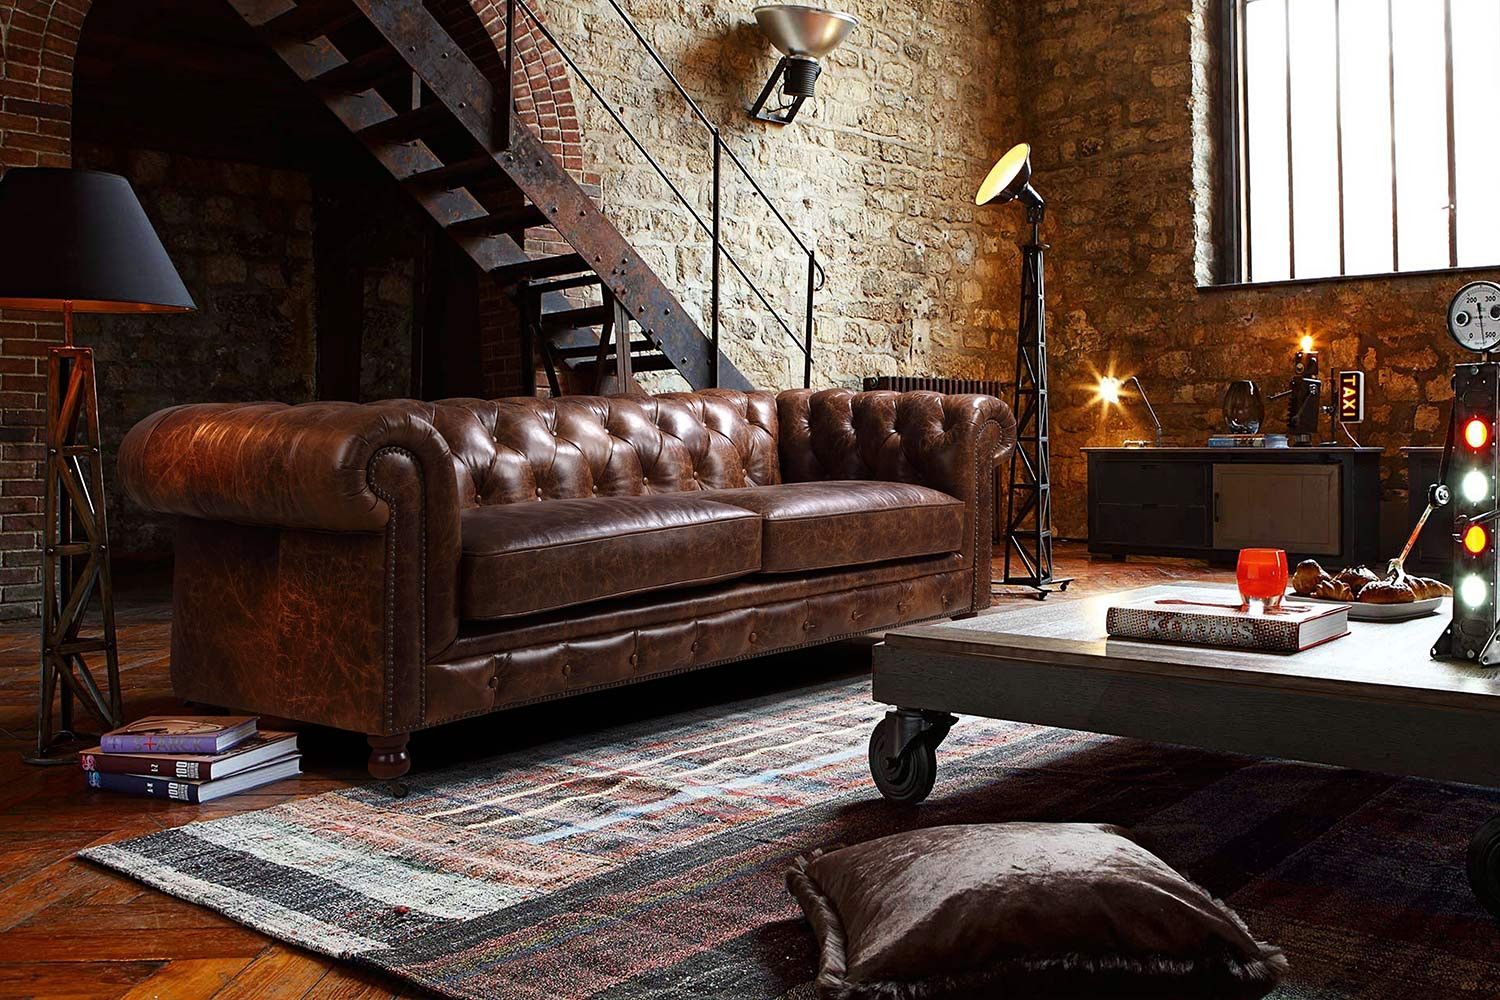 Kensington Chesterfield Leather Sofa by Rose & Moore in an Industrial Interior